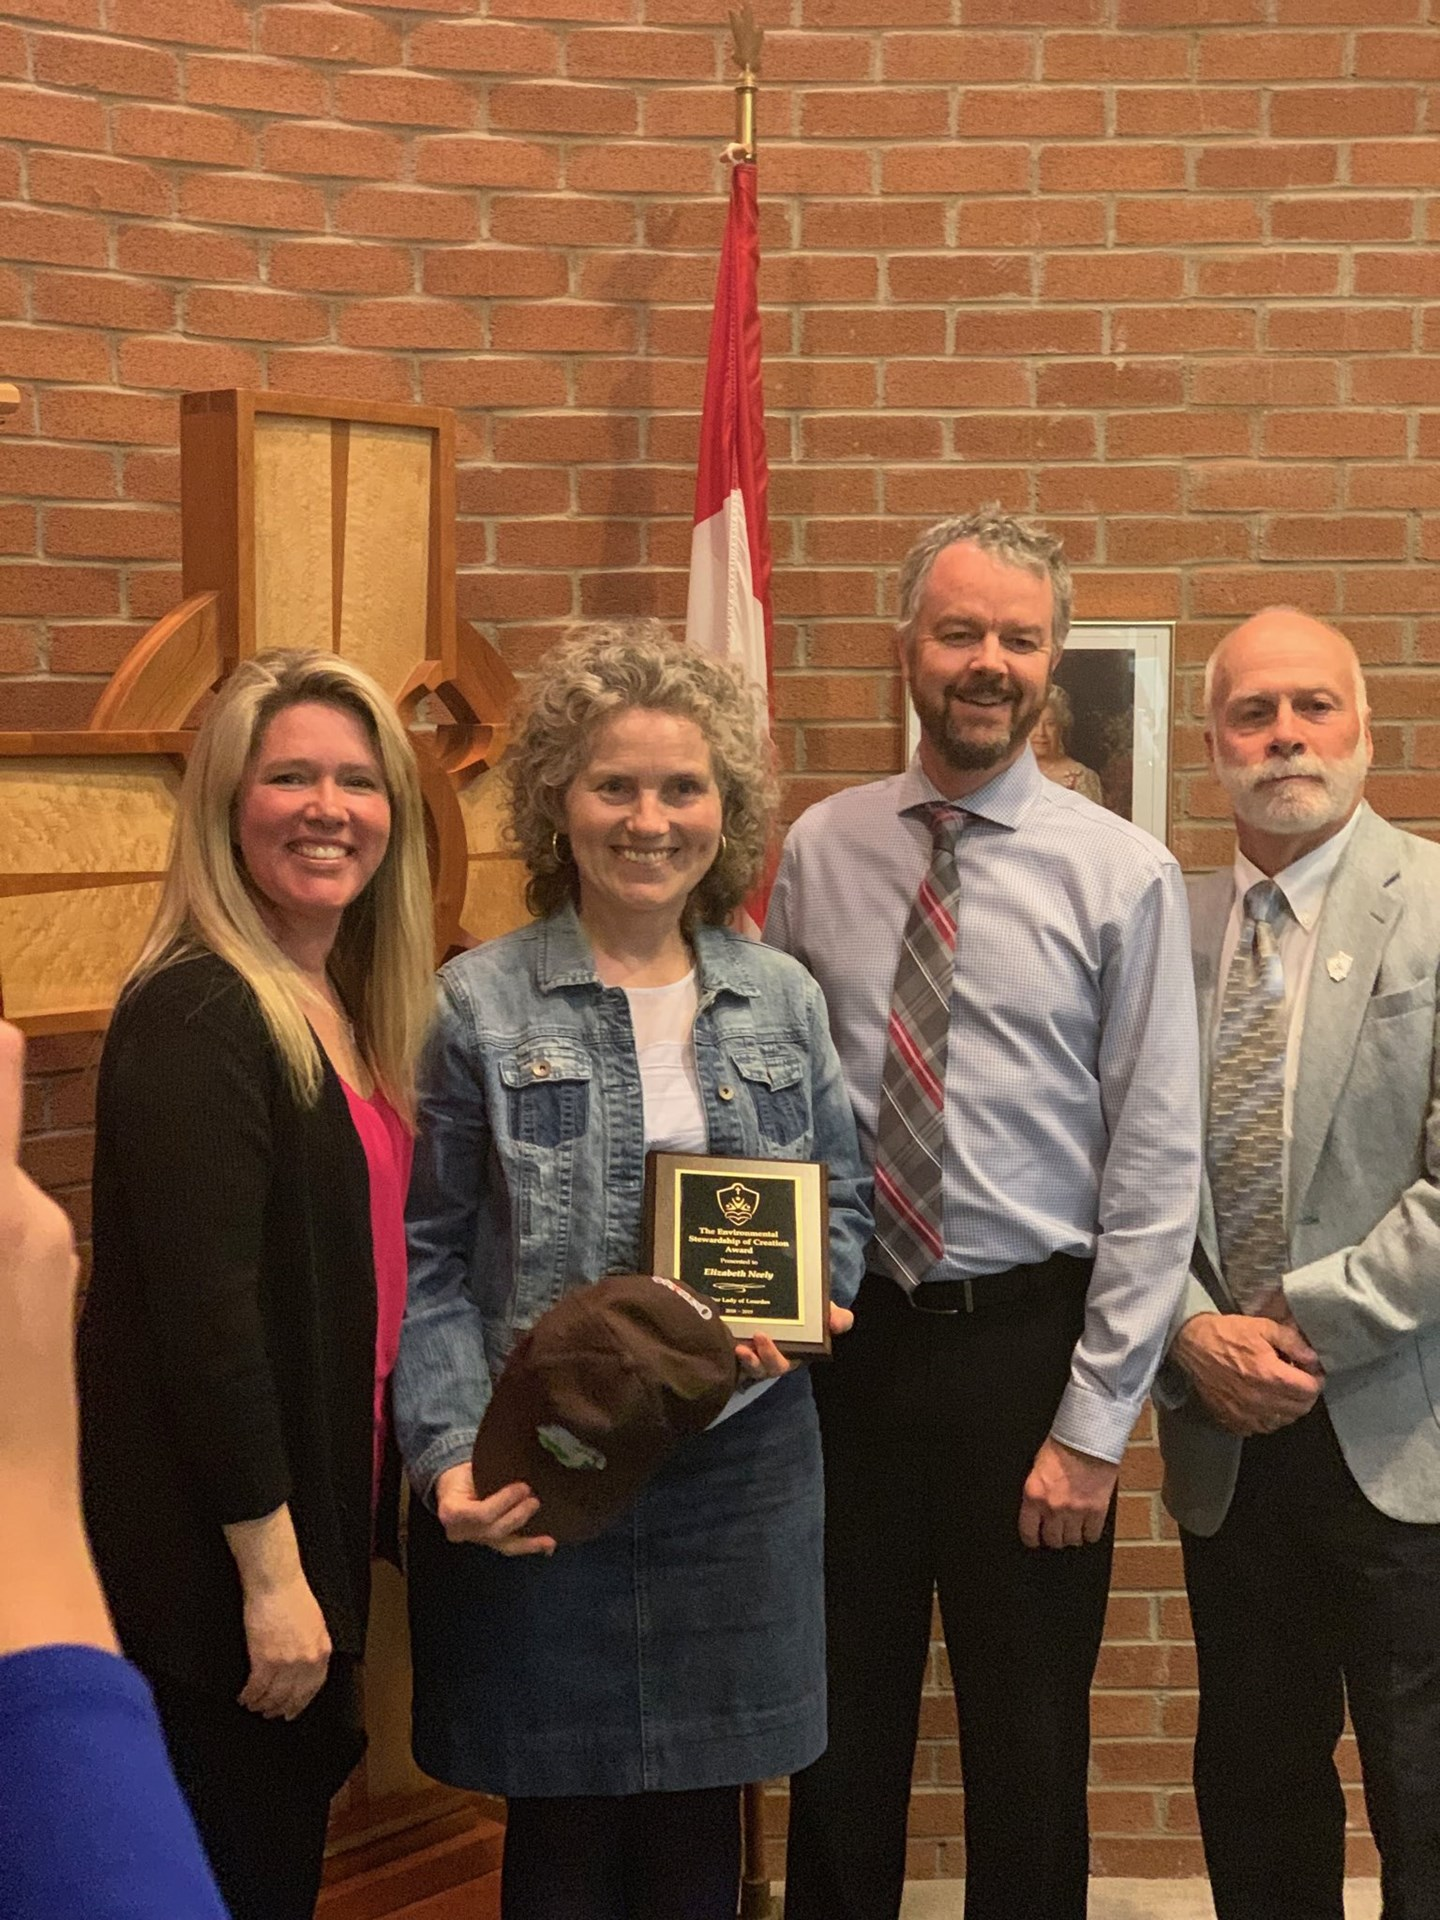 Congratulations to Mrs. Neely who received the Environmental Stewardship of Creation award